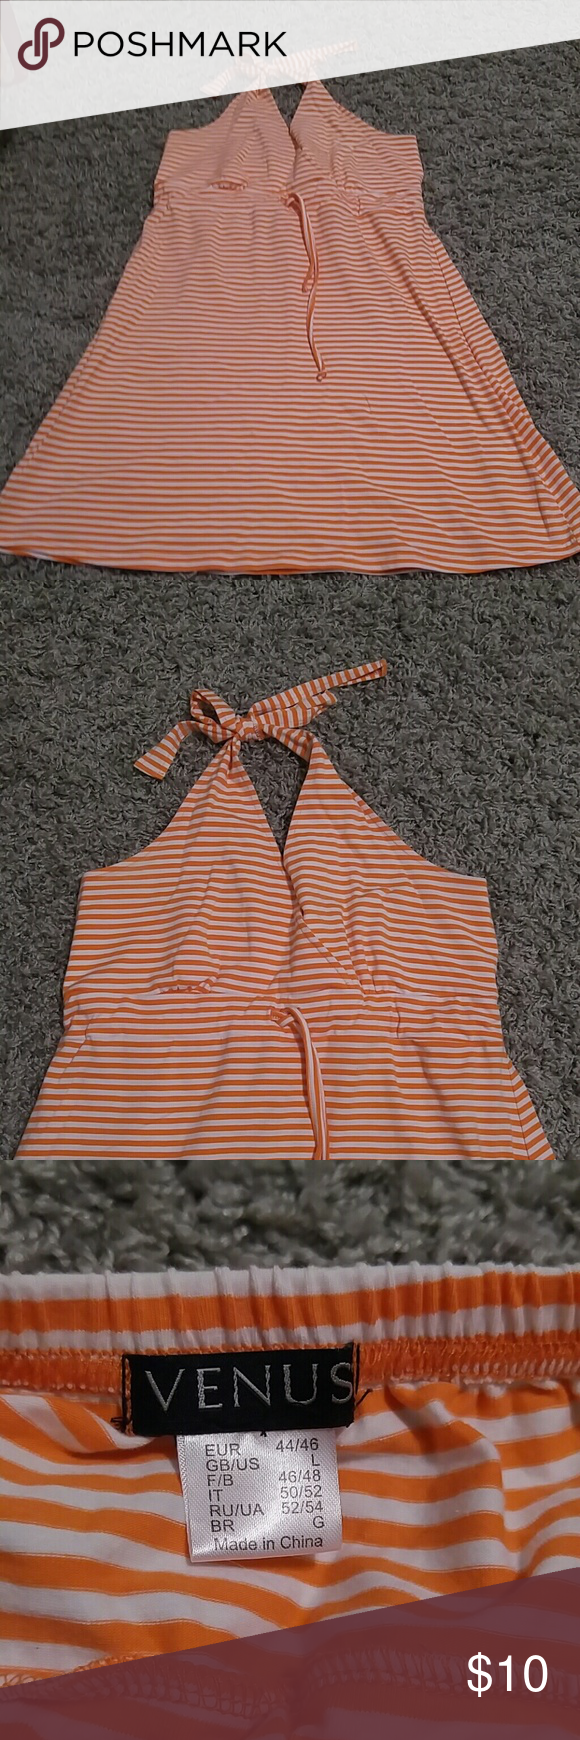 Cute beach dress/cover up White and orange. Size large perfect for a day at the beach! venus Dresses